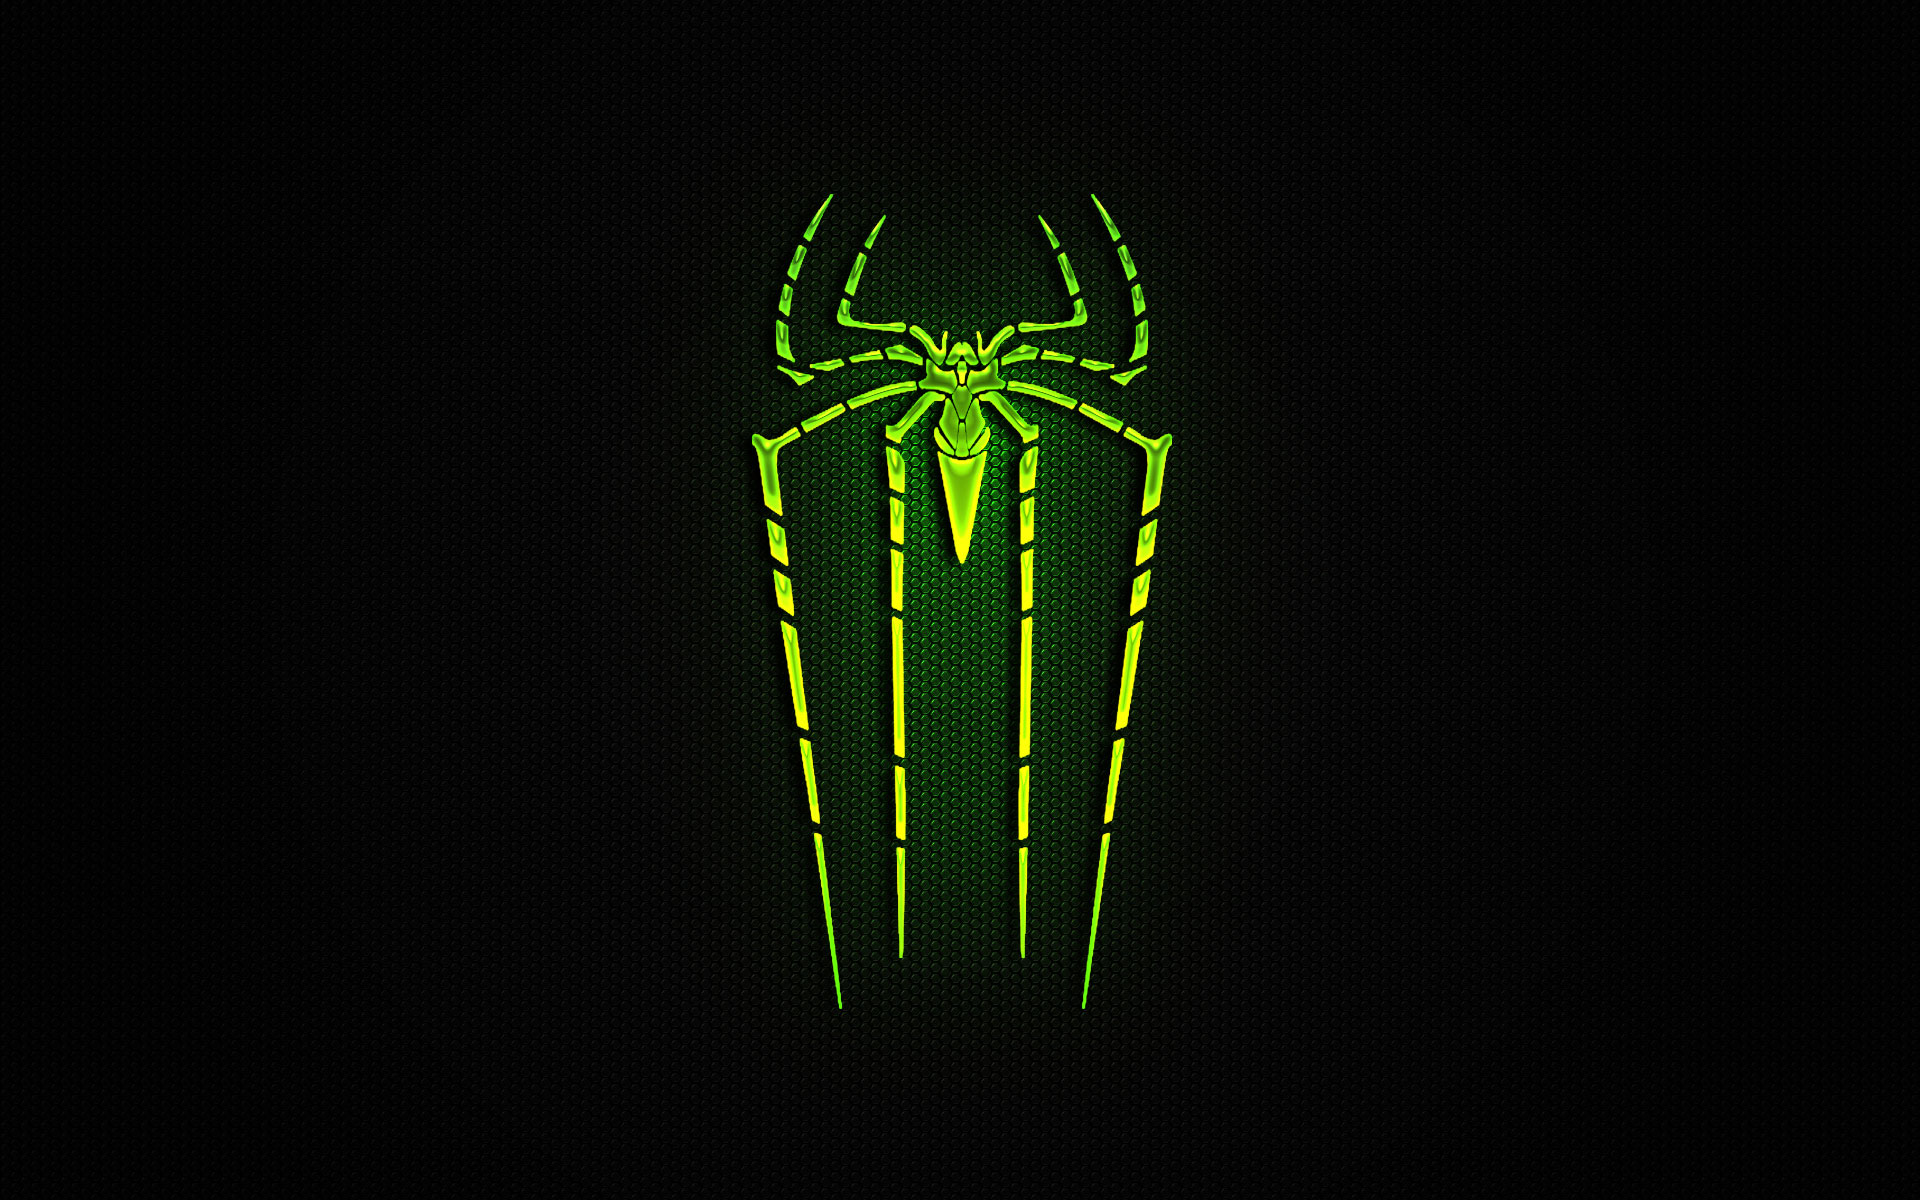 Spiderman Logo HD PC Wallpapers 260   HD Wallpapers Site 1920x1200